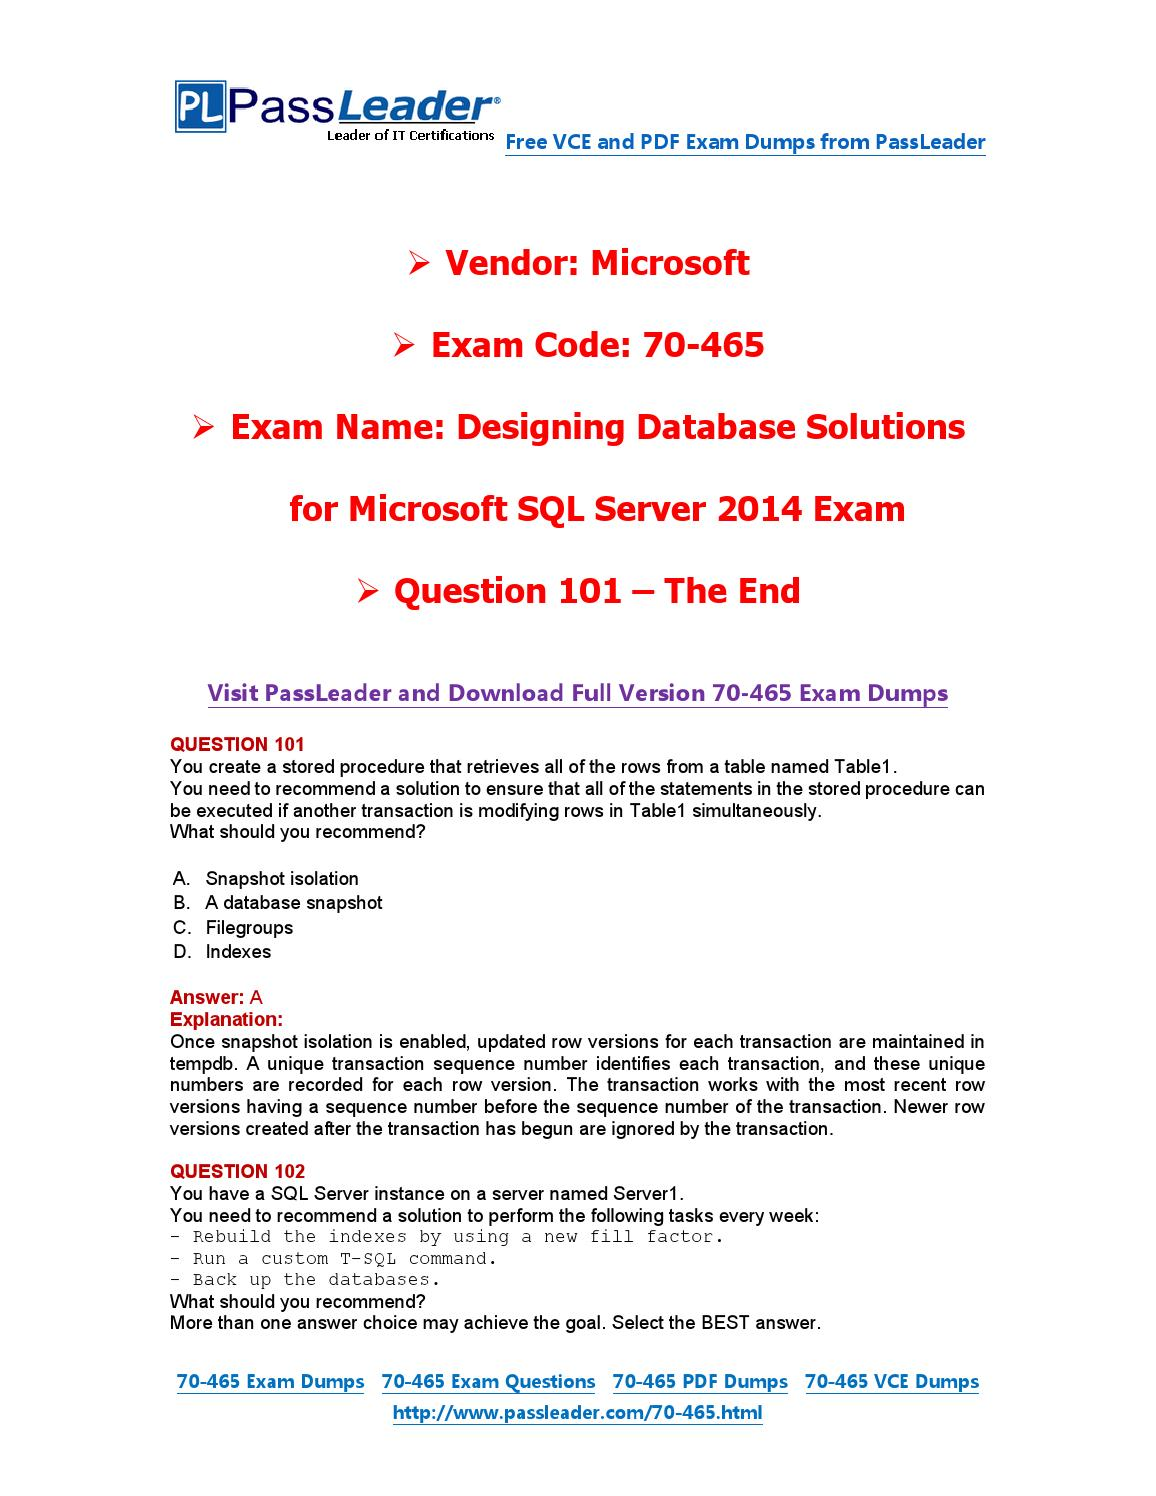 2016 New 70 465 Exam Dumps For Free Vce And Pdf 101 End By Exam